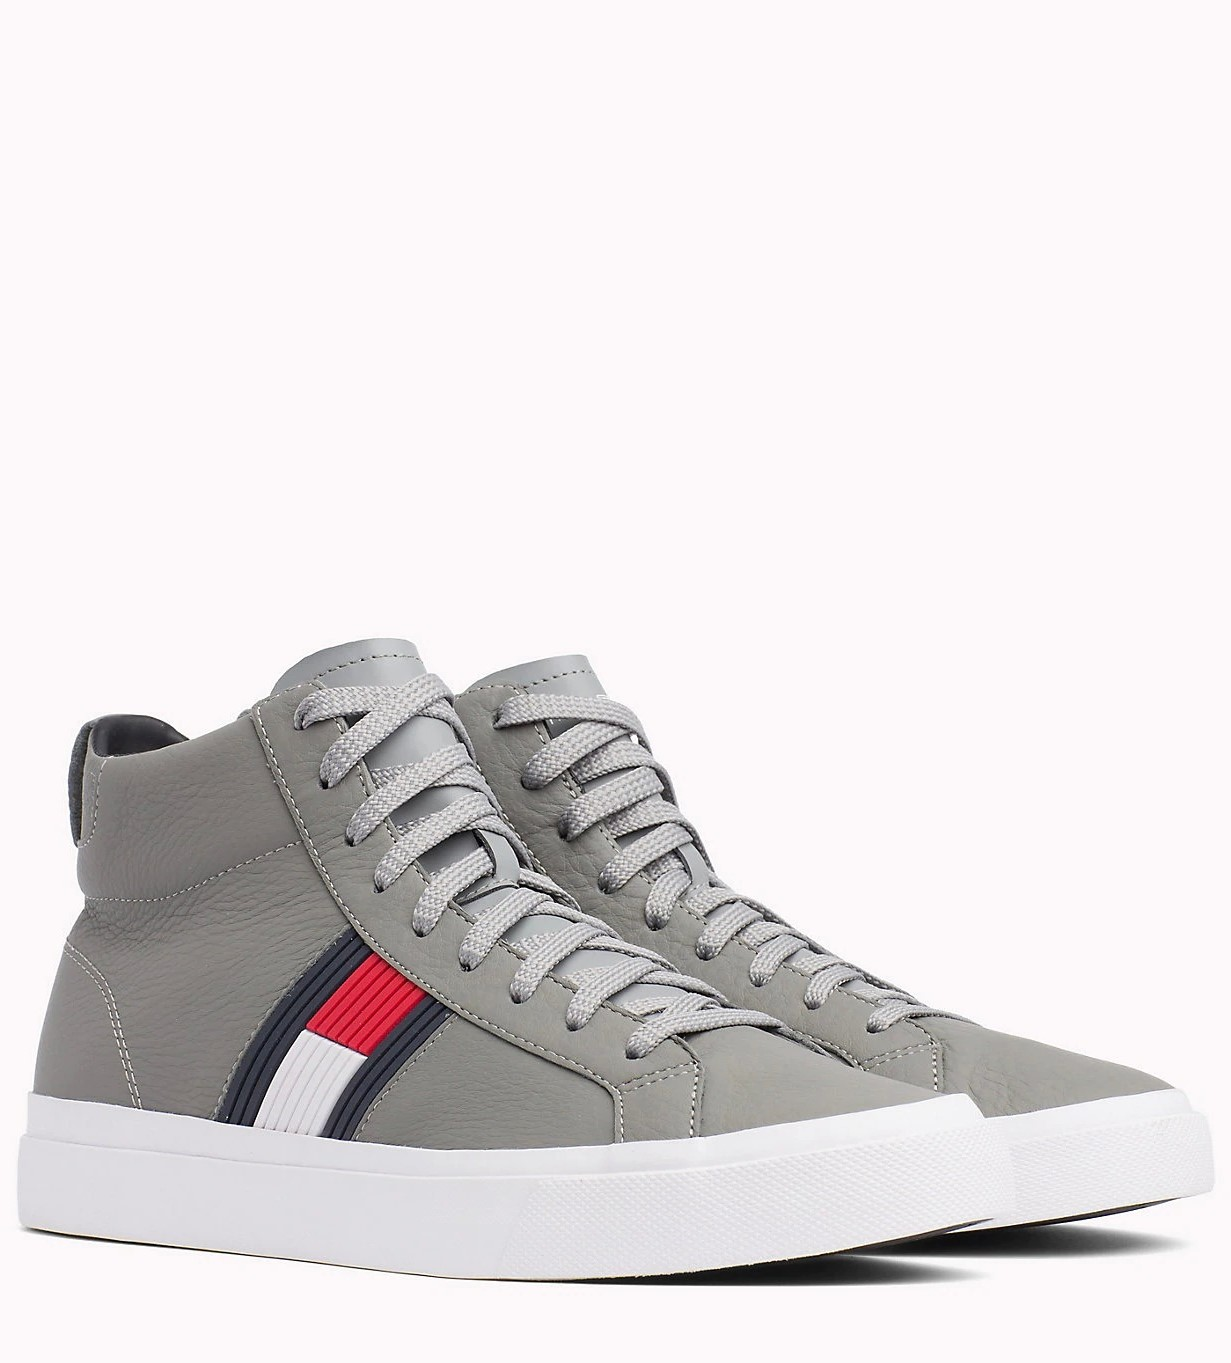 Tommy Hilfiger šedé kožené unisex tenisky Flag Detail High Leather Sneaker  Light Grey - 43 6d047483ad6